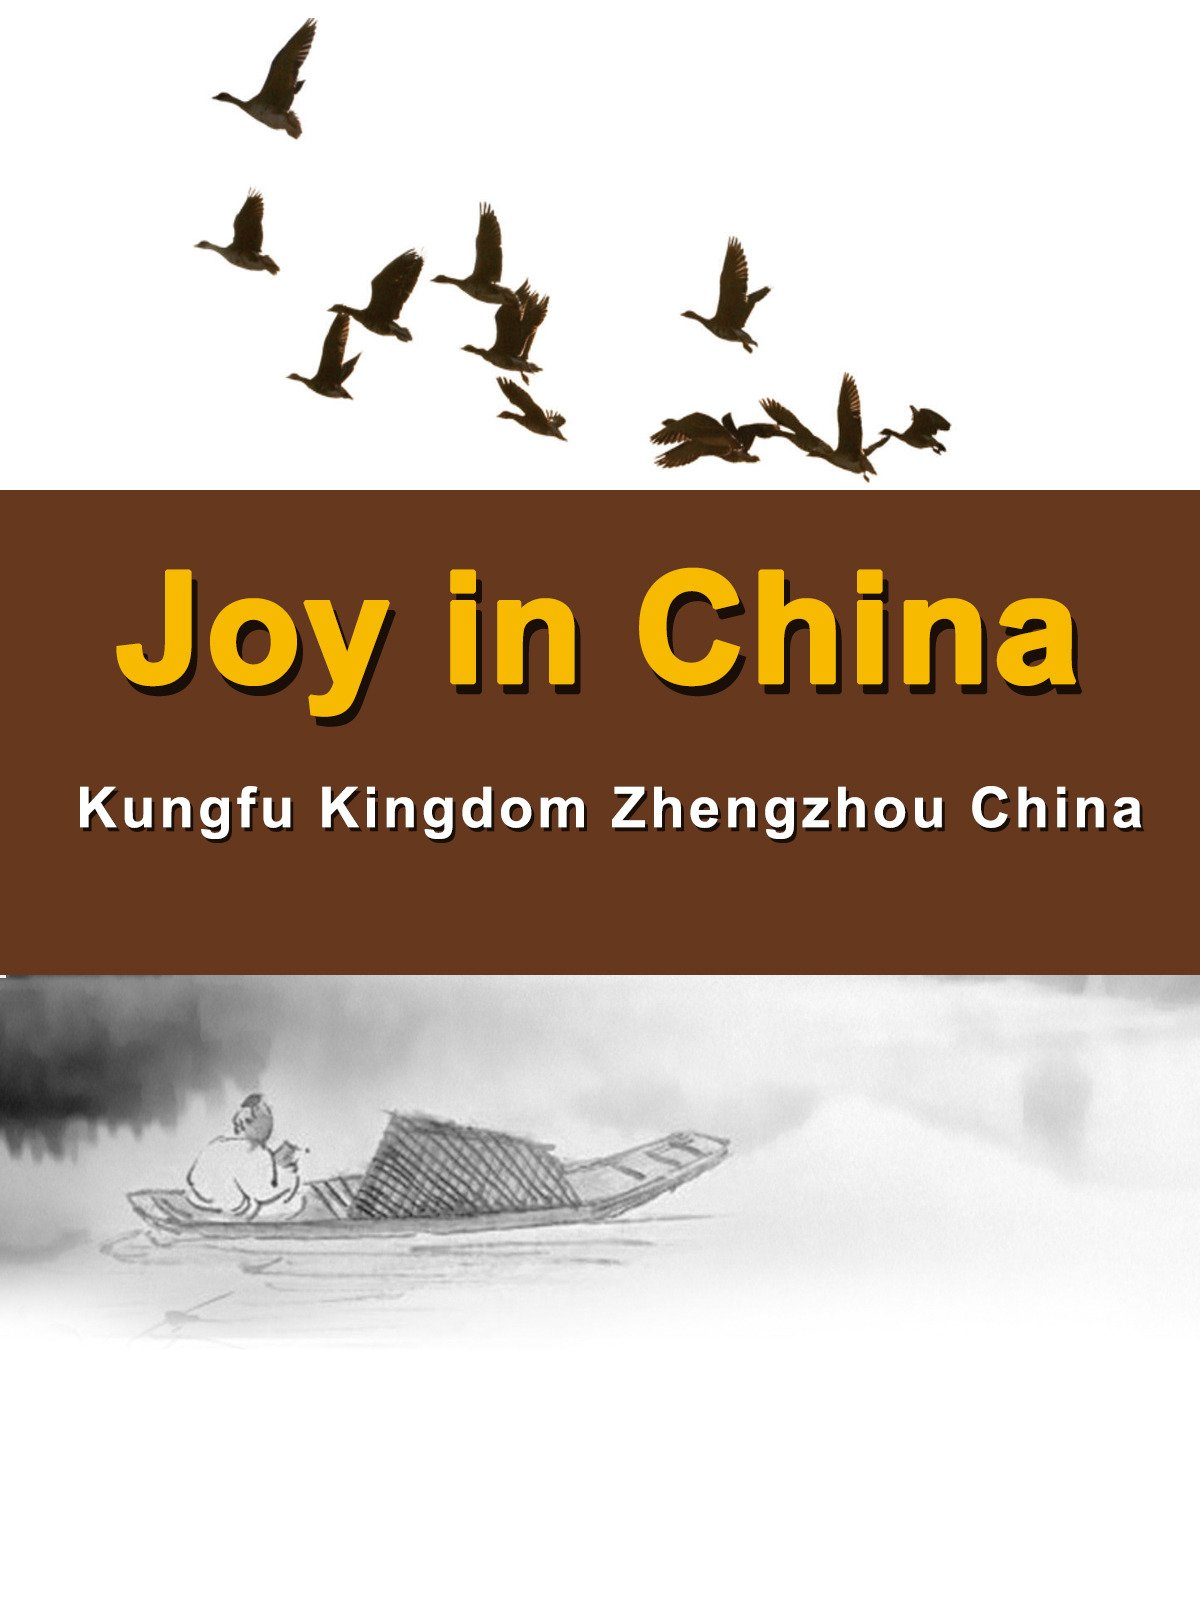 Joy in China:Kungfu Kingdom Zhengzhou China